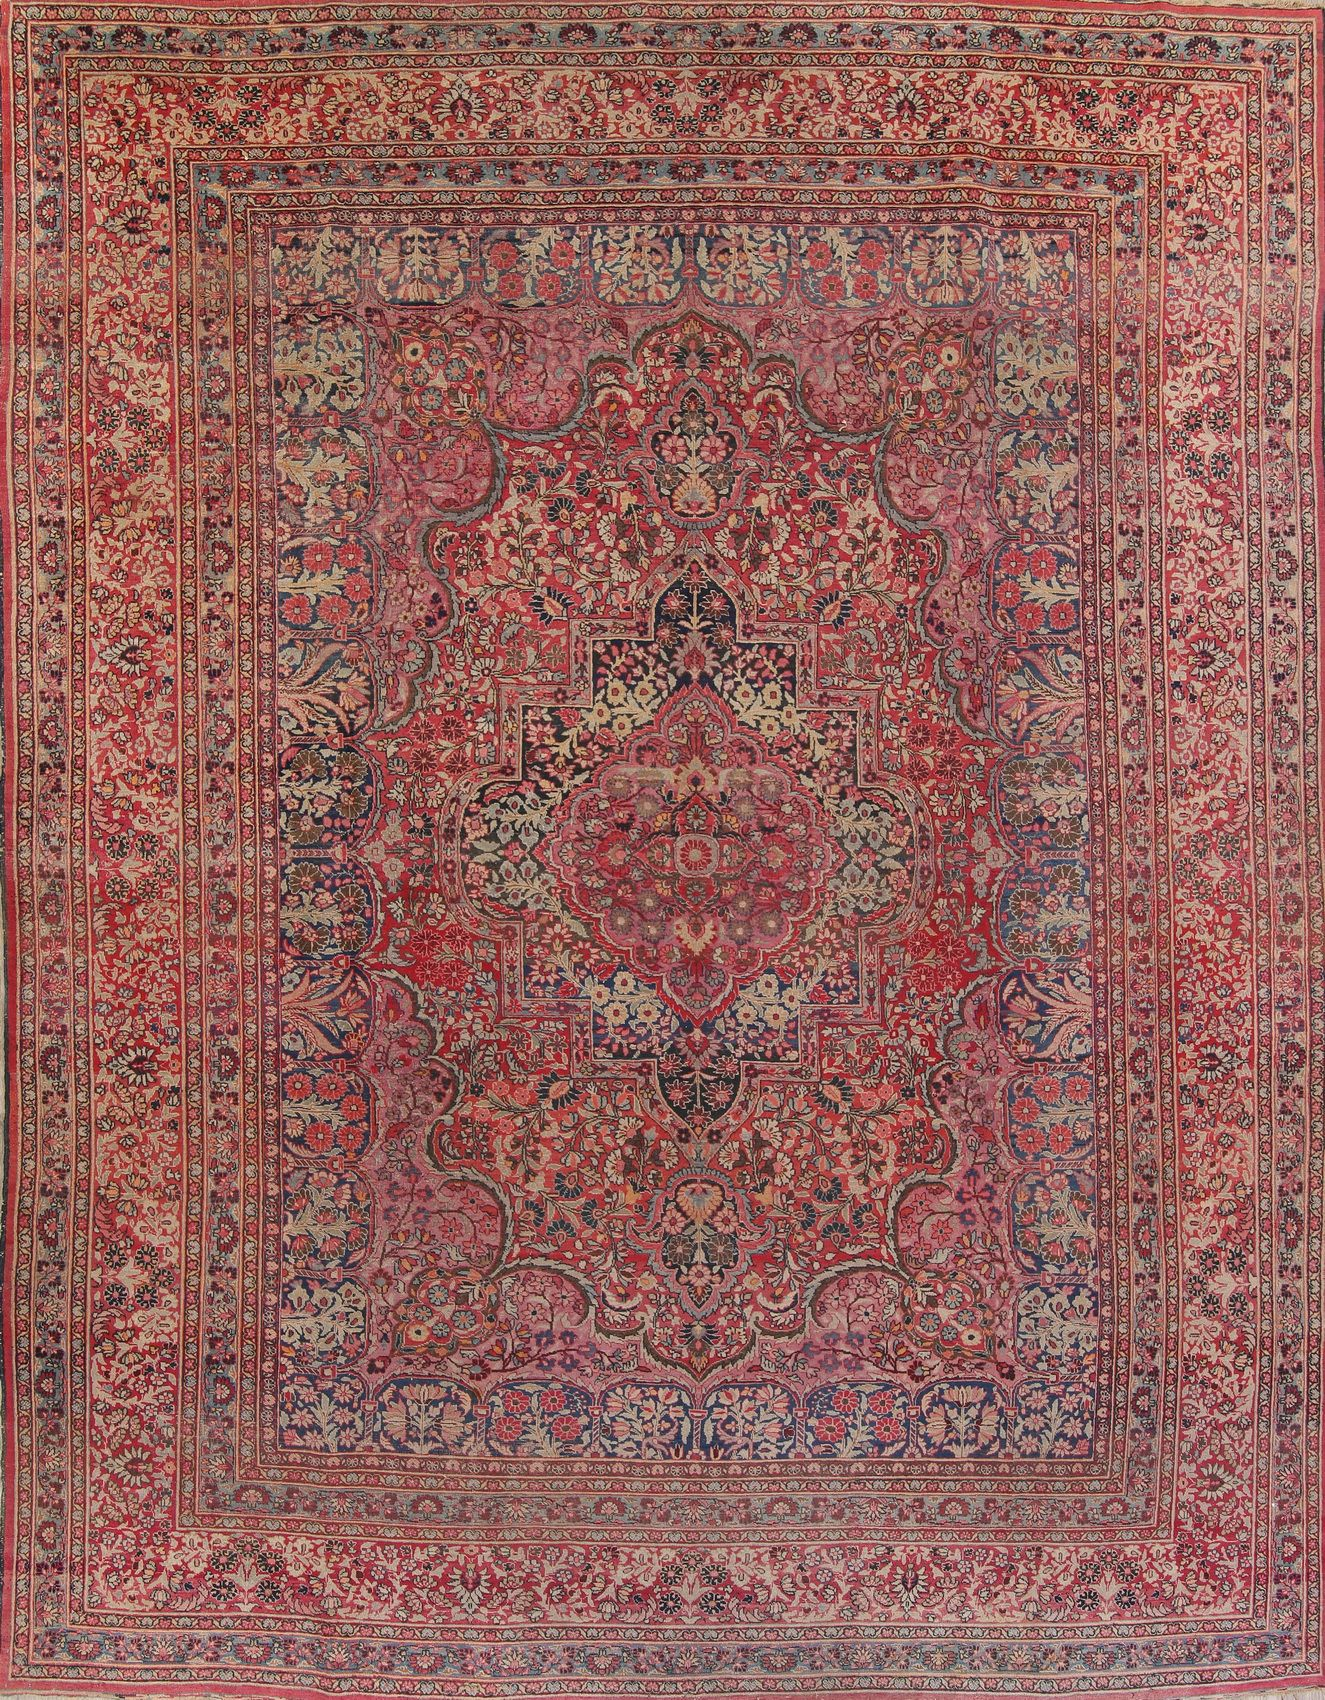 Antique Floral Red Dorokhsh Persian Hand Knotted Area Rug Wool